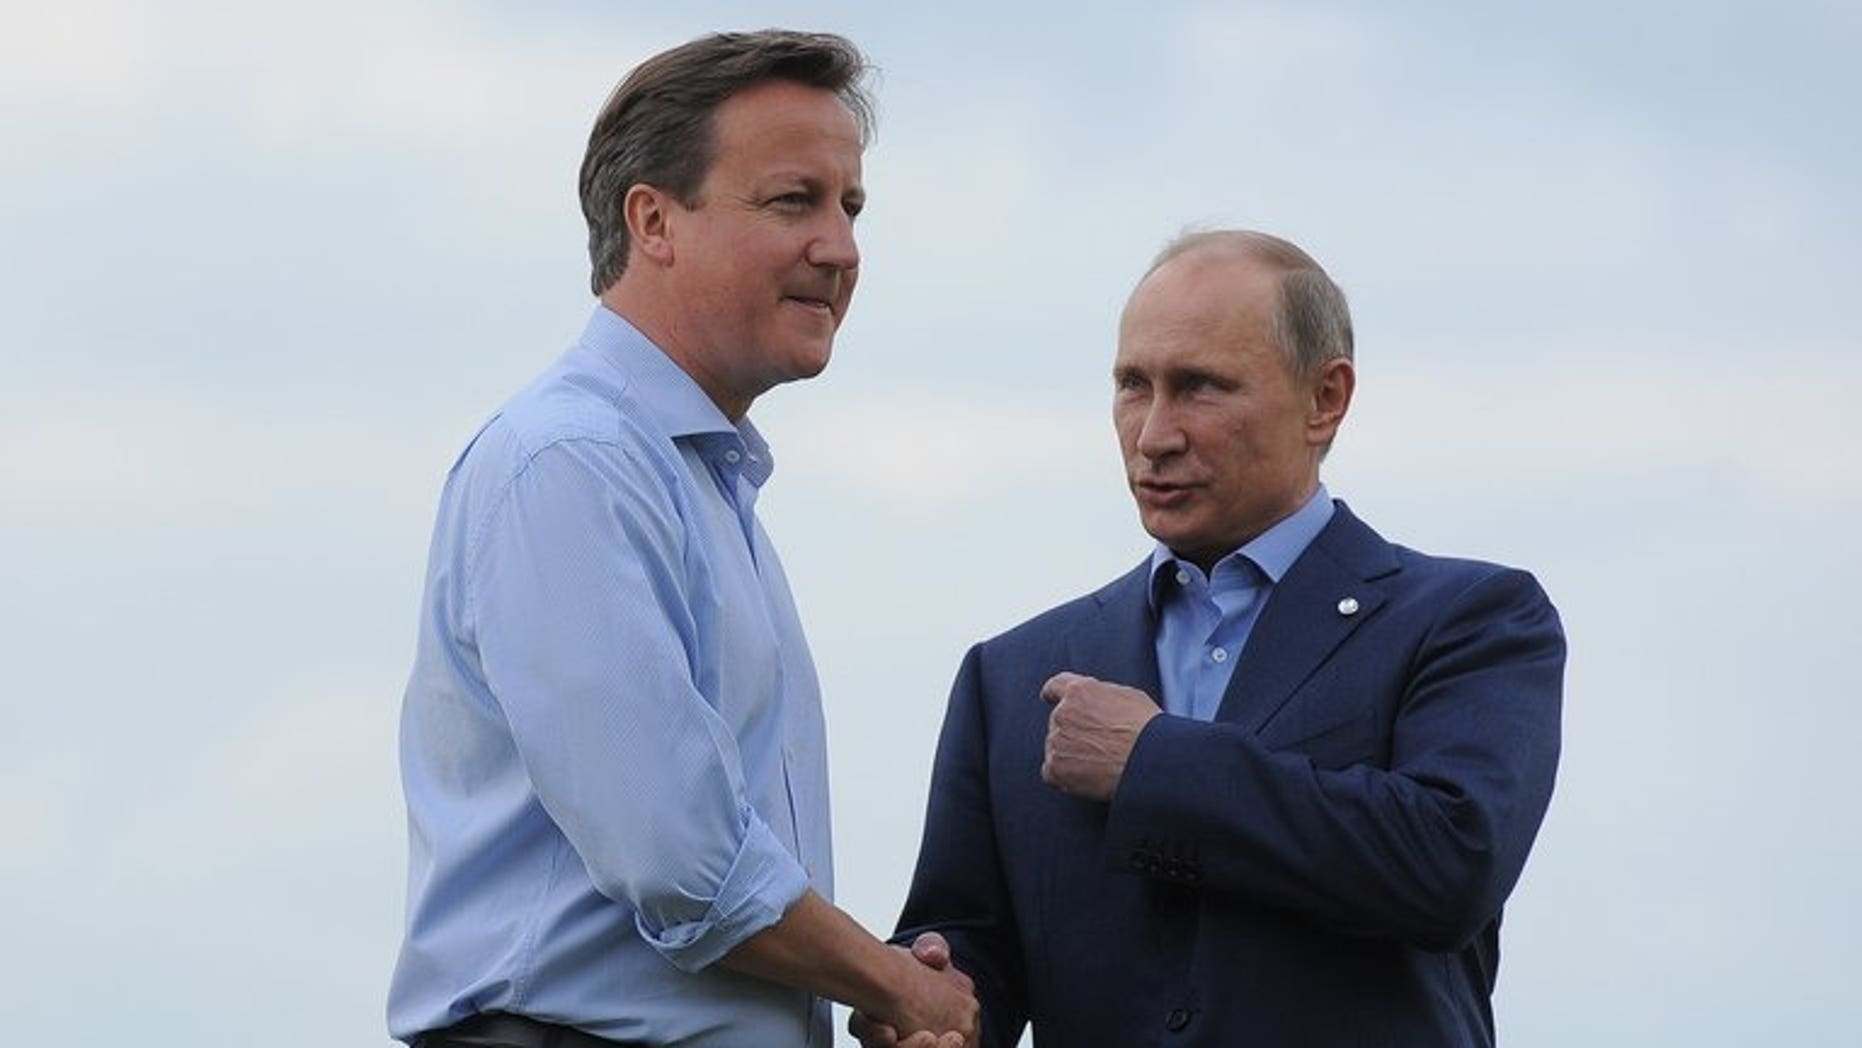 British Prime Minister David Cameron (L) greets Russia's President Vladimir Putin during the official arrrivals for the start of the G8 Summit at the Lough Erne resort near Enniskillen in Northern Ireland on June 17, 2013. UK officials said Russia risks isolation from the West if it does not sign up to action in Syria.